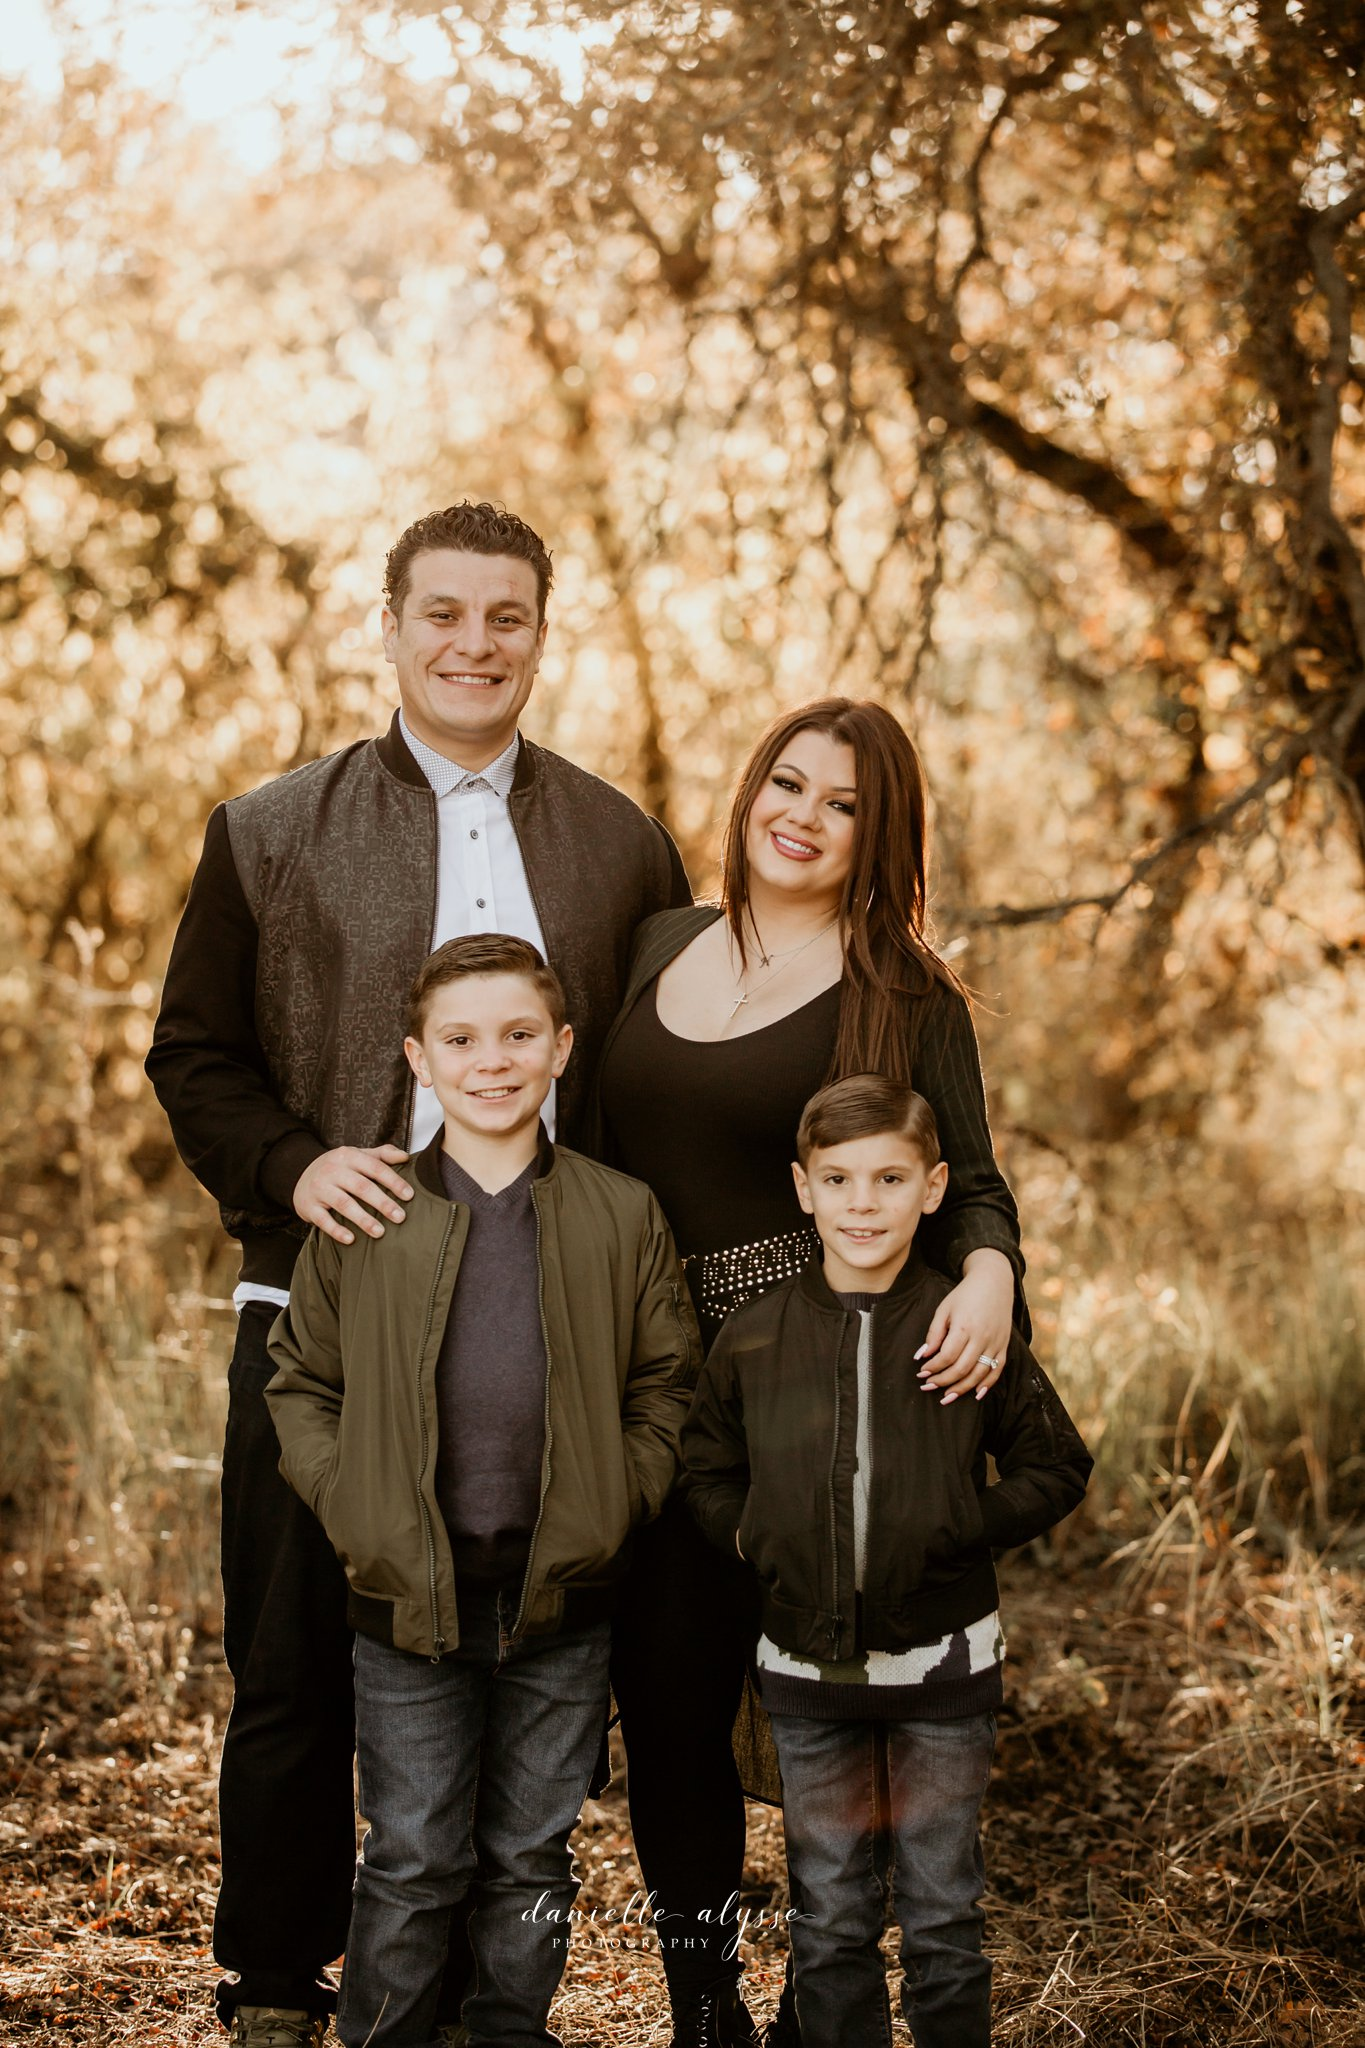 181125_fall_family_portrait_cosumnes_river_preserve_brittney_danielle_alysse_photography_1_WEB.jpg